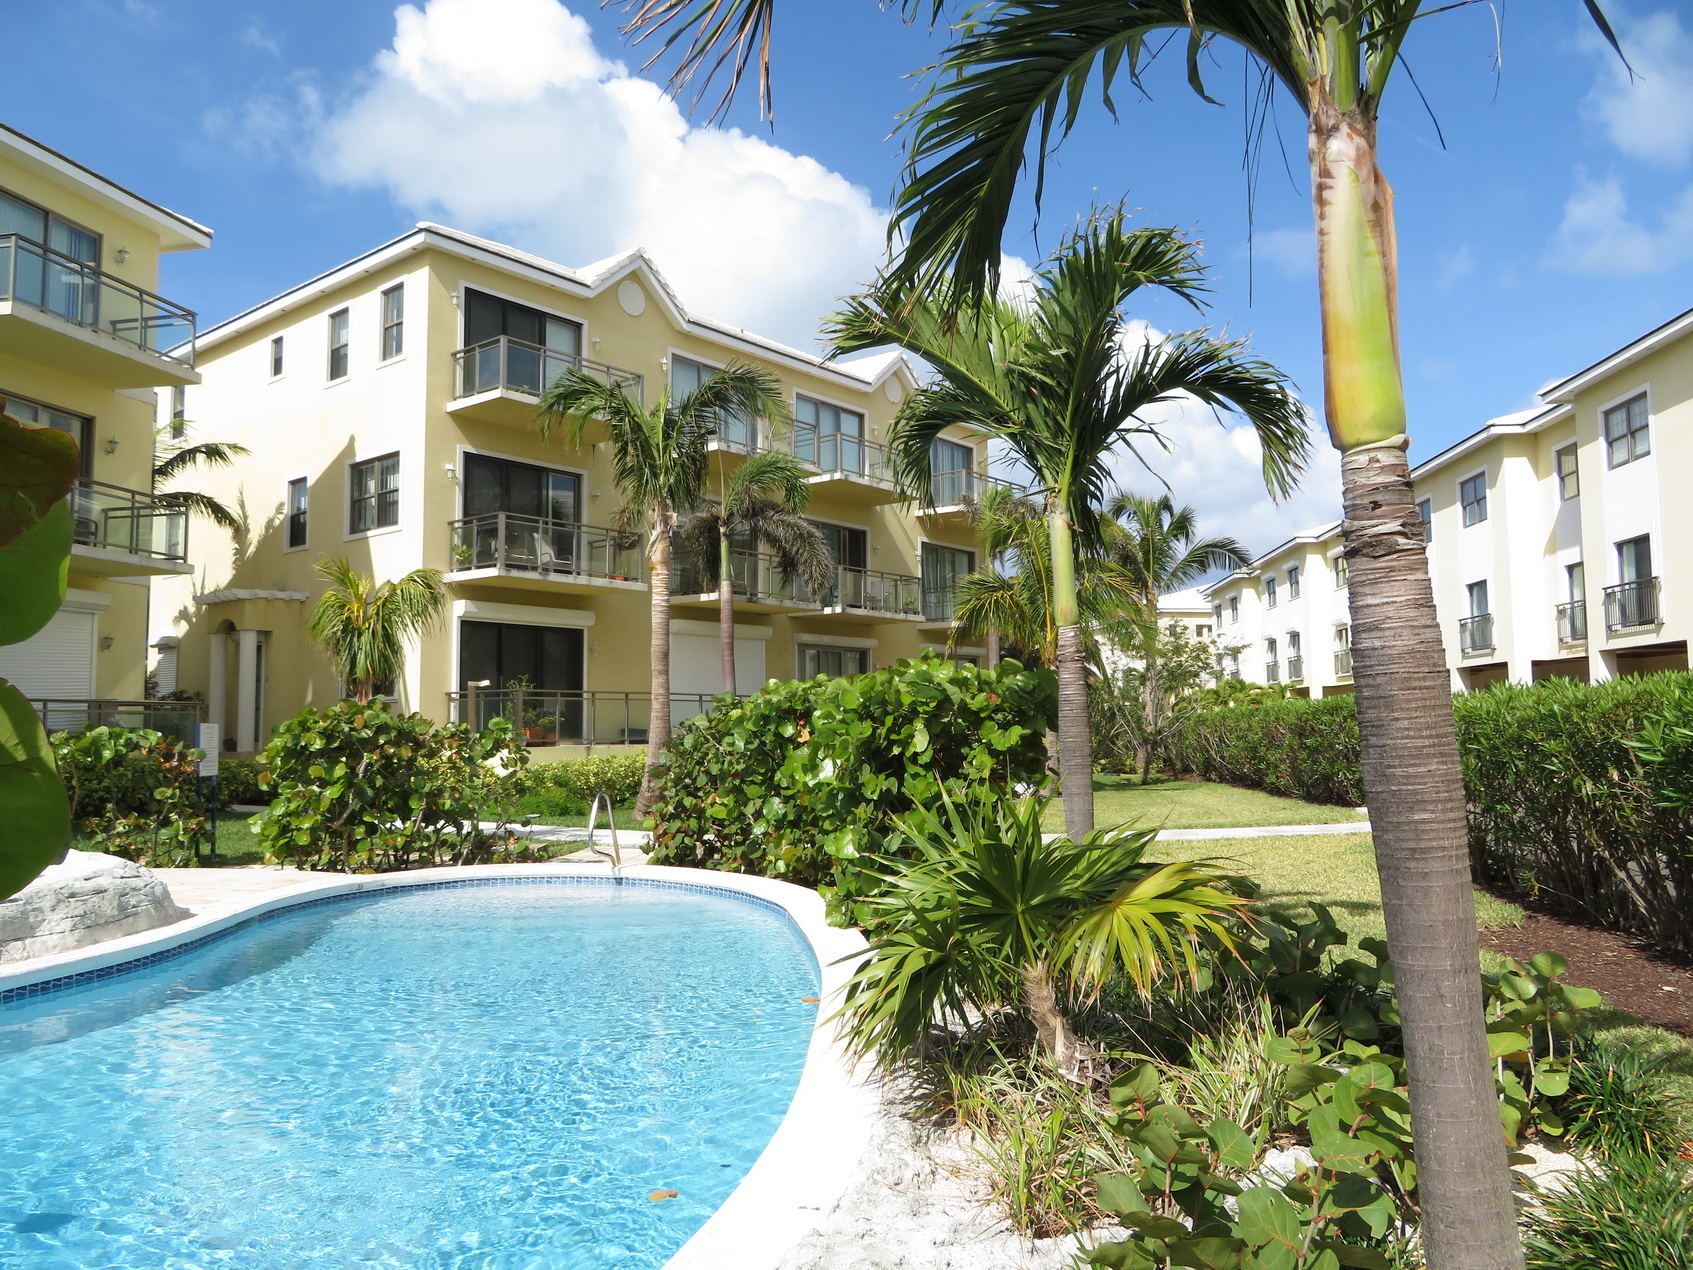 Co-op / Condo for Sale at Columbus Cove contemporary garden apartment - MLS 29815 Love Beach, Nassau And Paradise Island, Bahamas